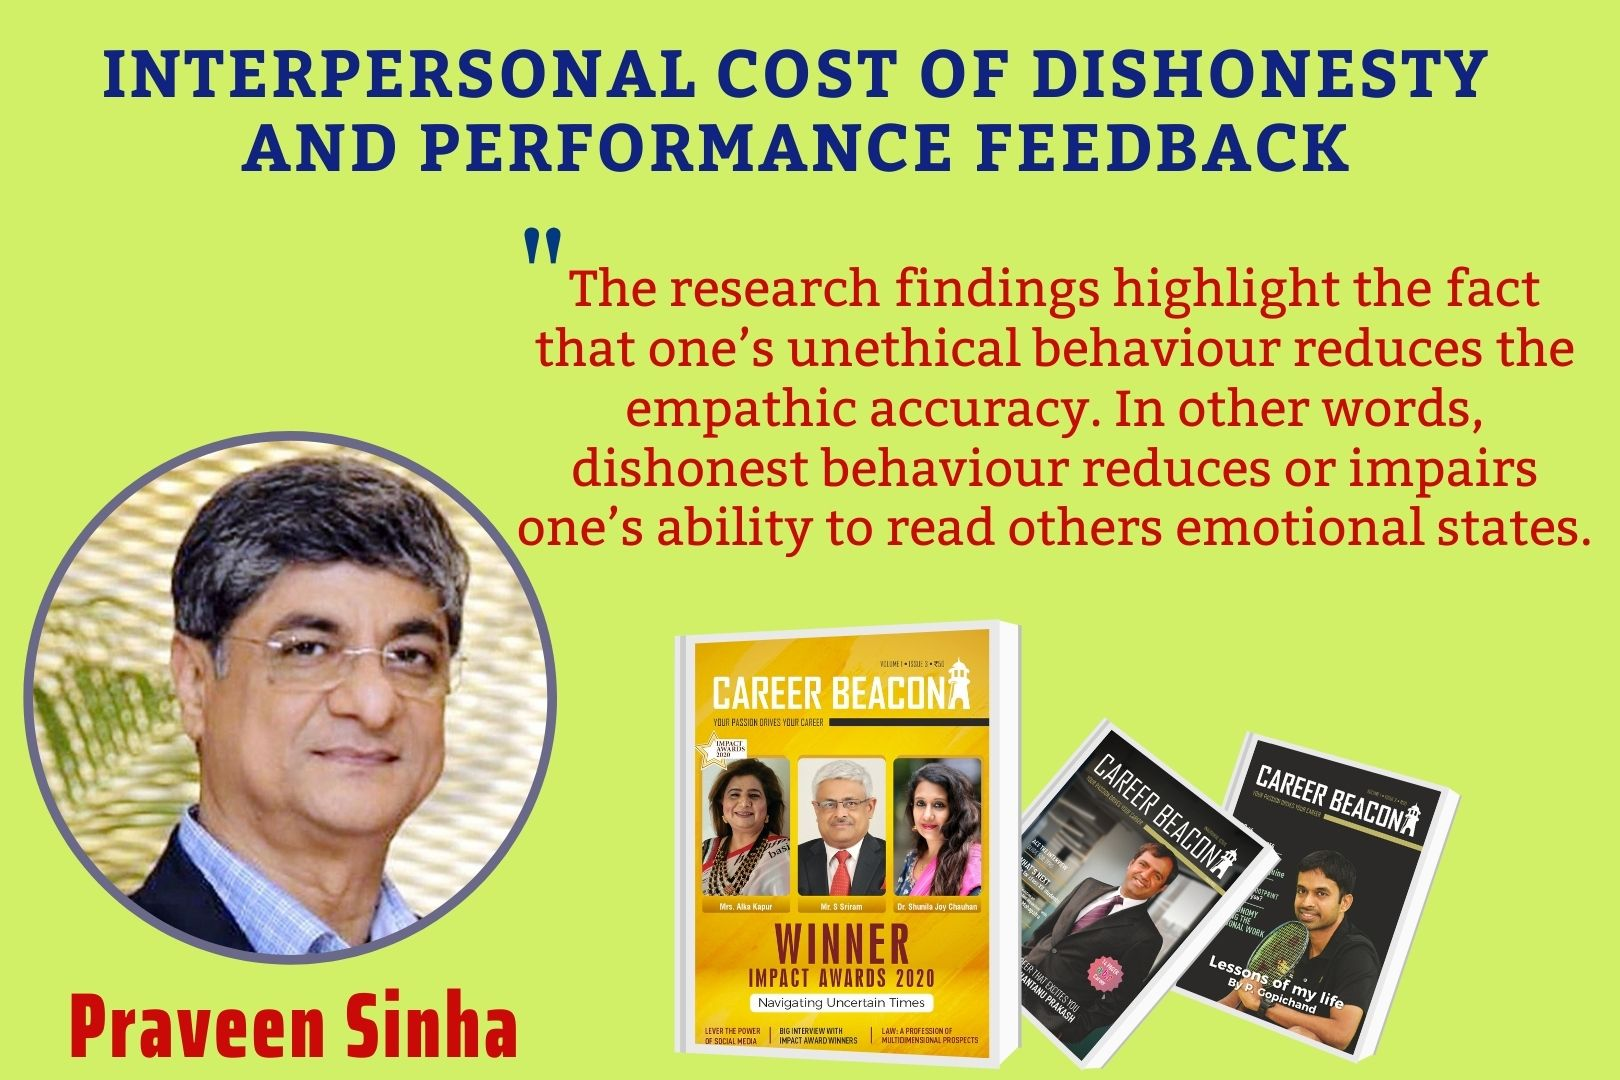 INTERPERSONAL COST OF DISHONESTY AND PERFORMANCE FEEDBACK